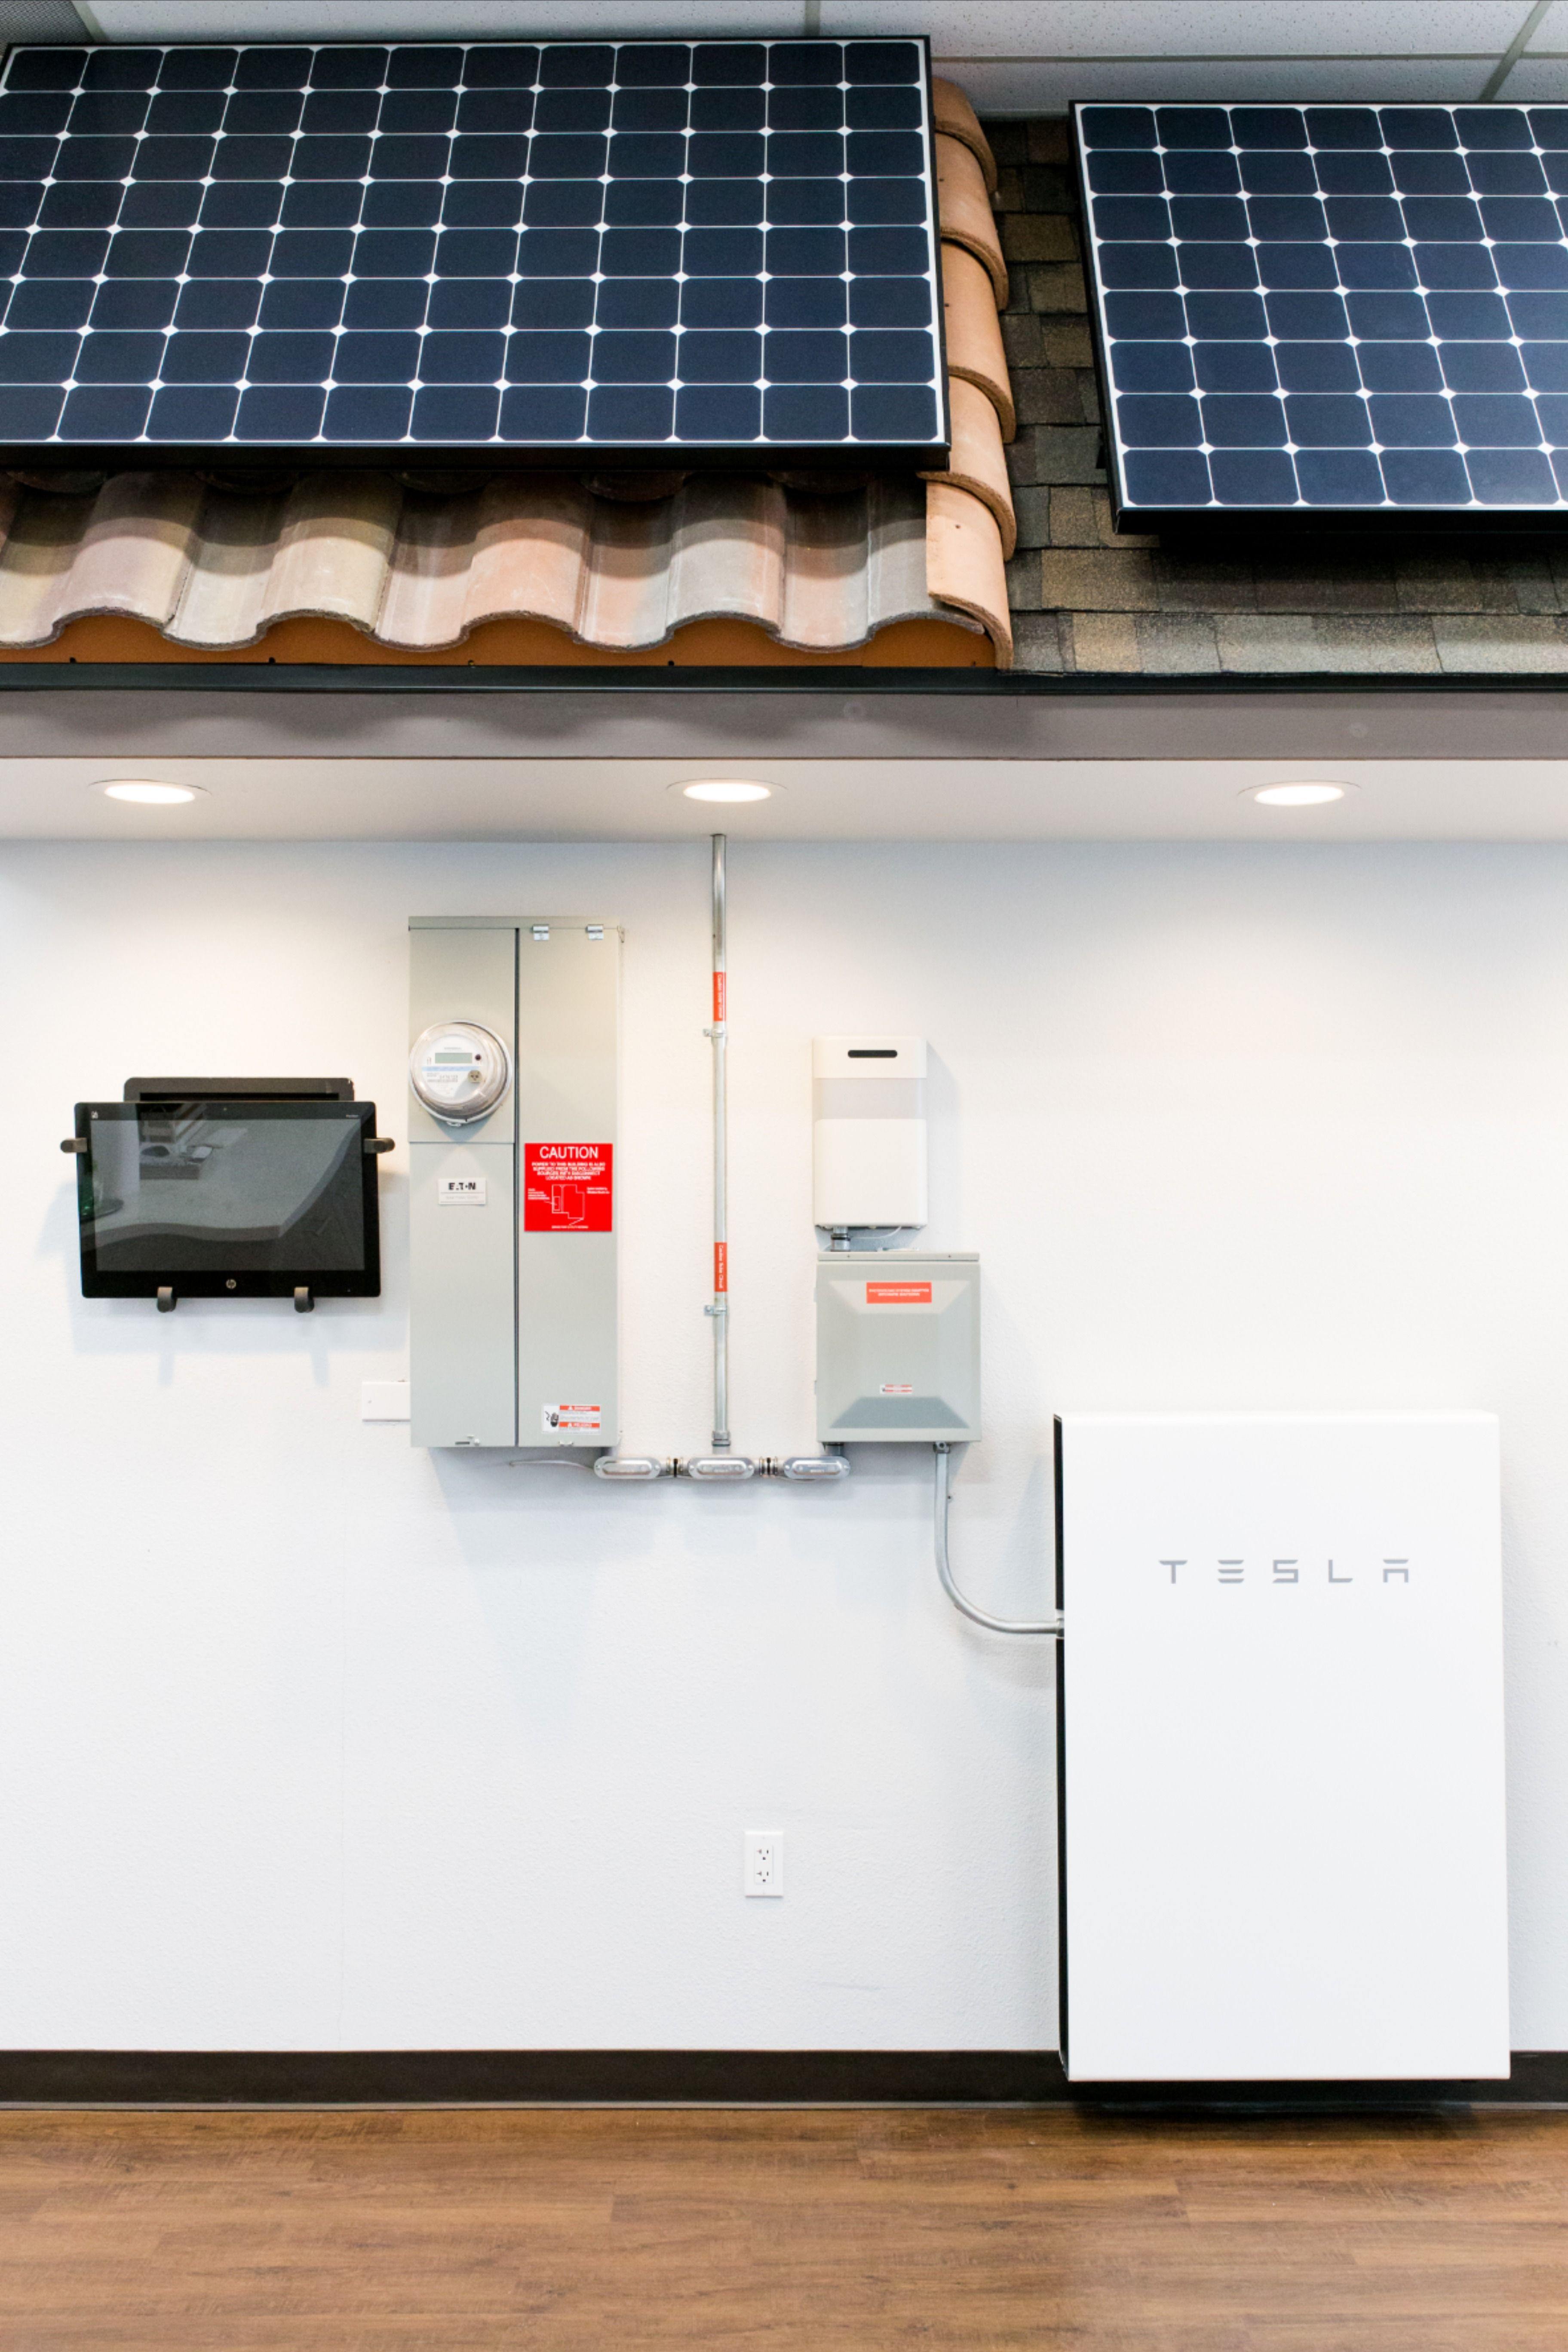 What Are The Benefits Of A Tesla Powerwall In 2020 Powerwall Solar Tesla Powerwall